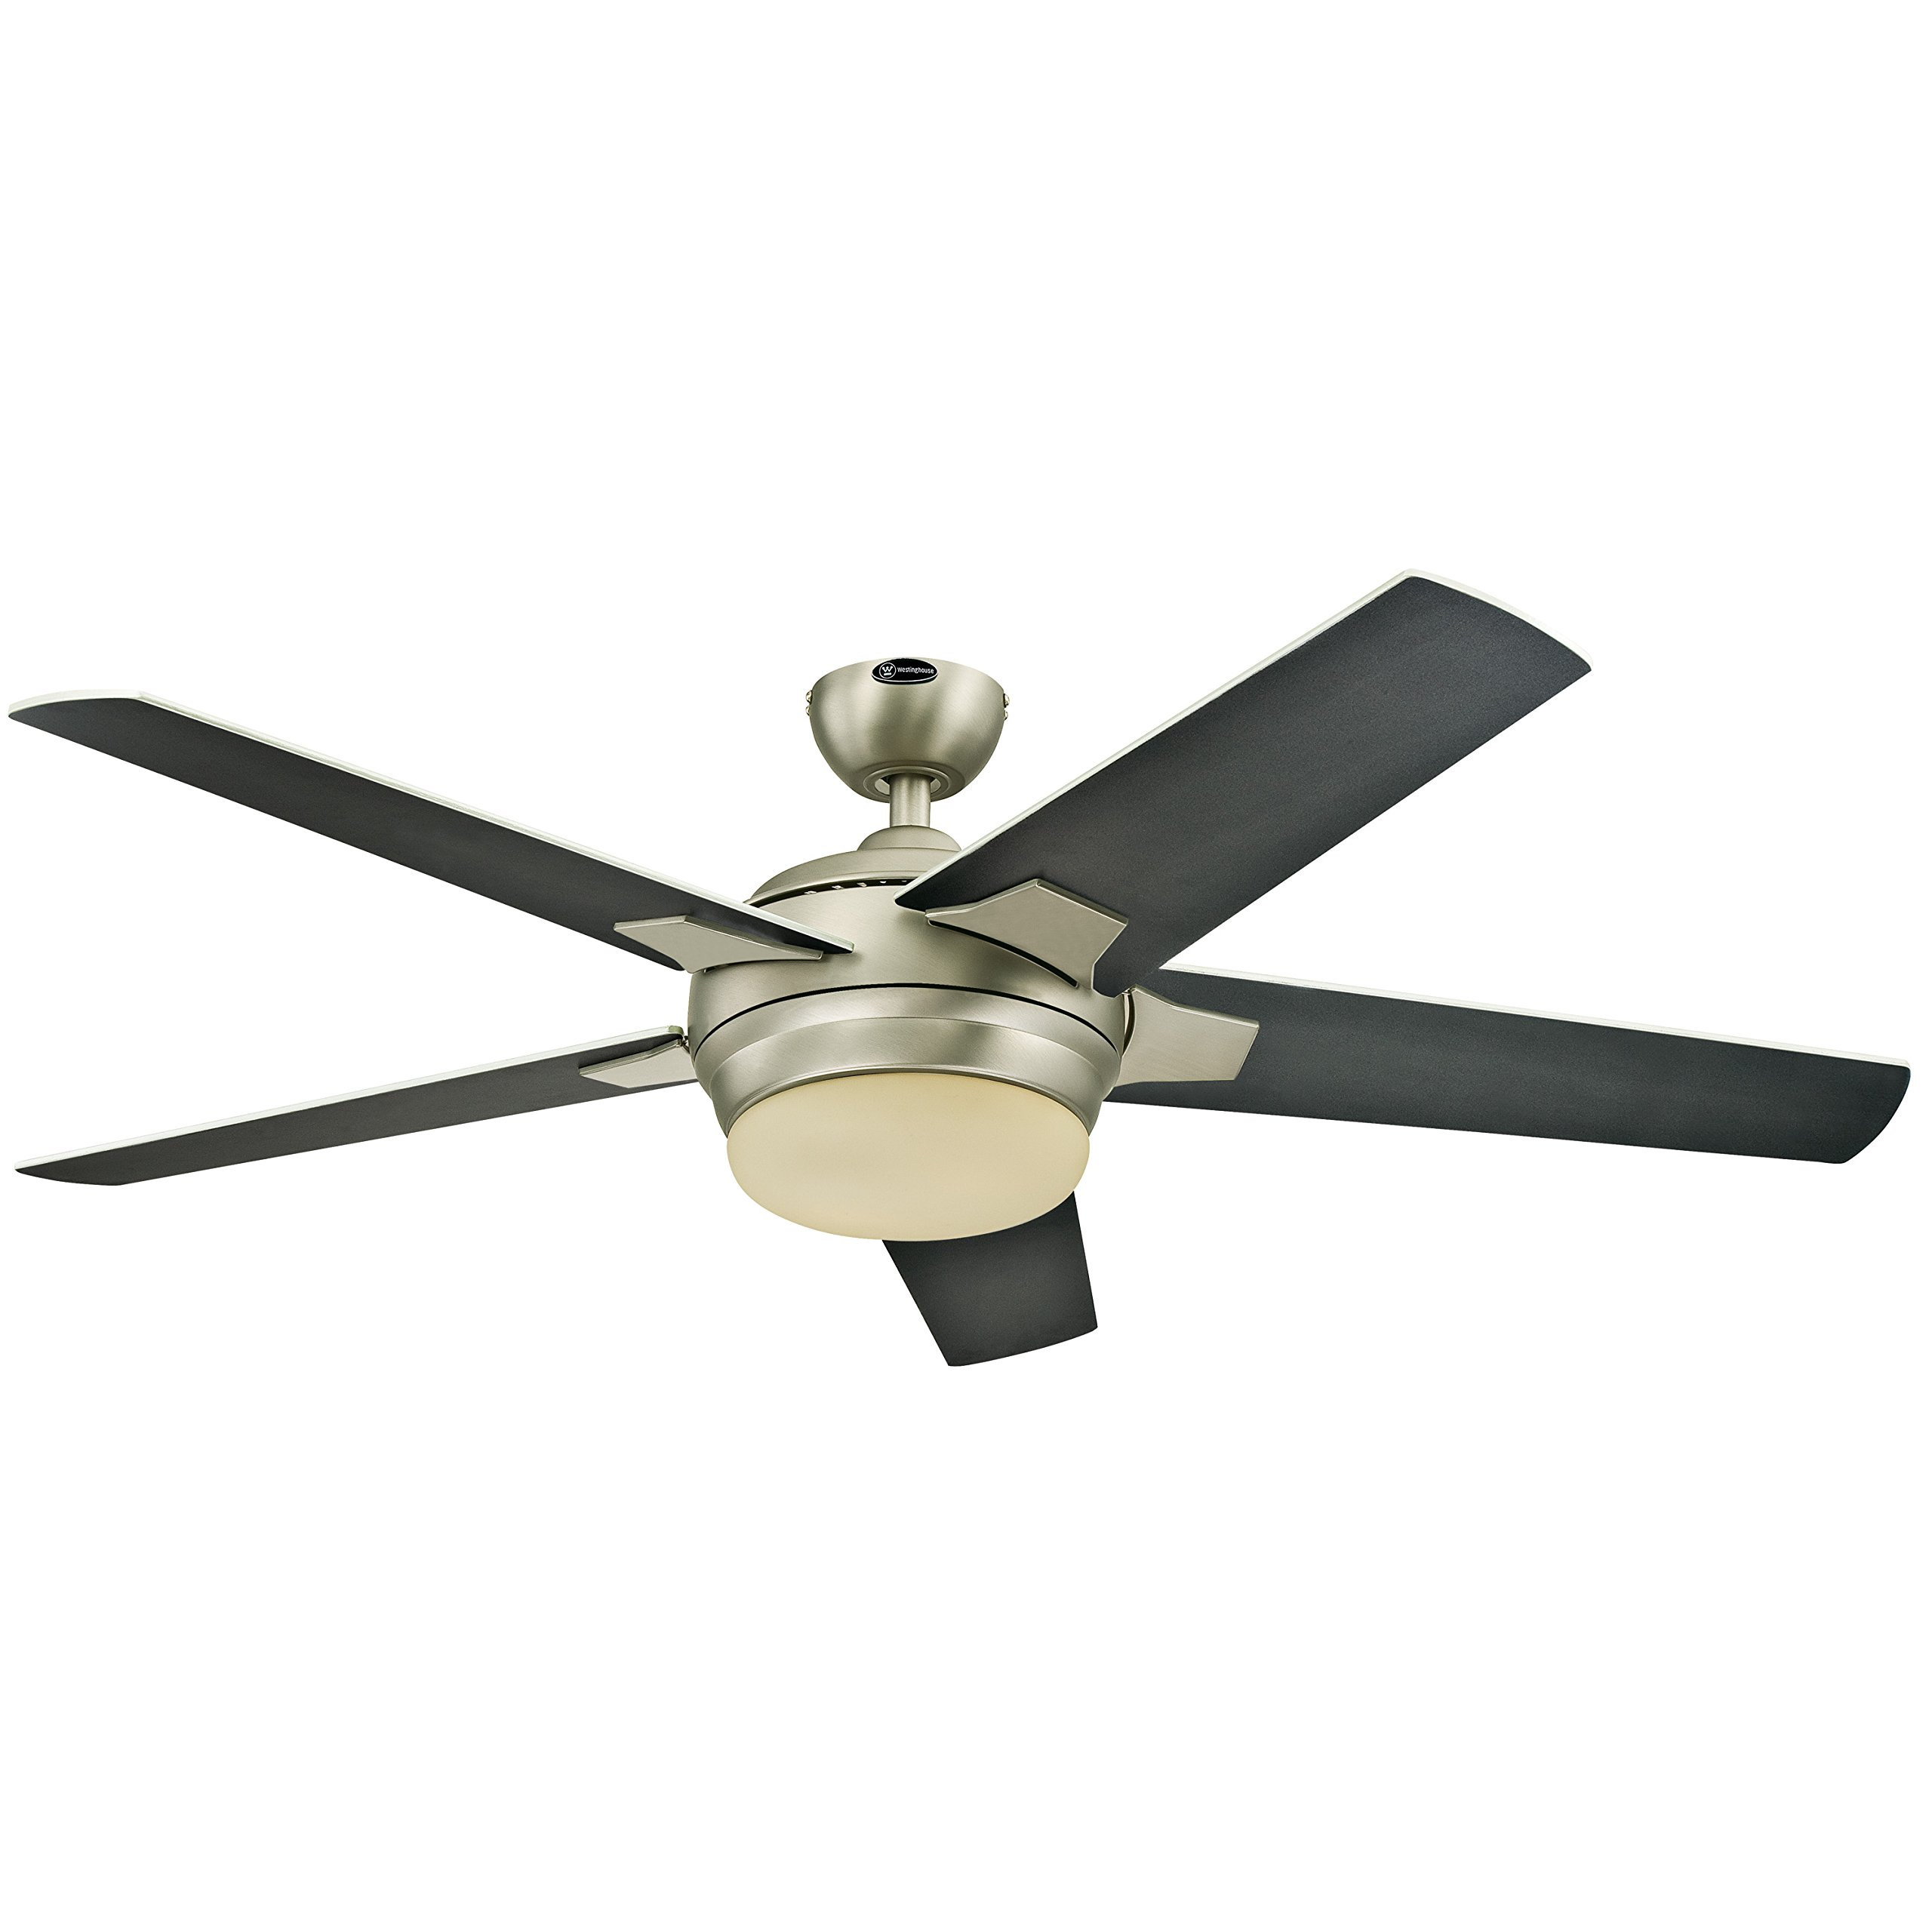 Westinghouse 7204000 Bolton Two-Light 52'' Reversible Plywood Five-Blade Indoor Ceiling Fan, Brushed Aluminum